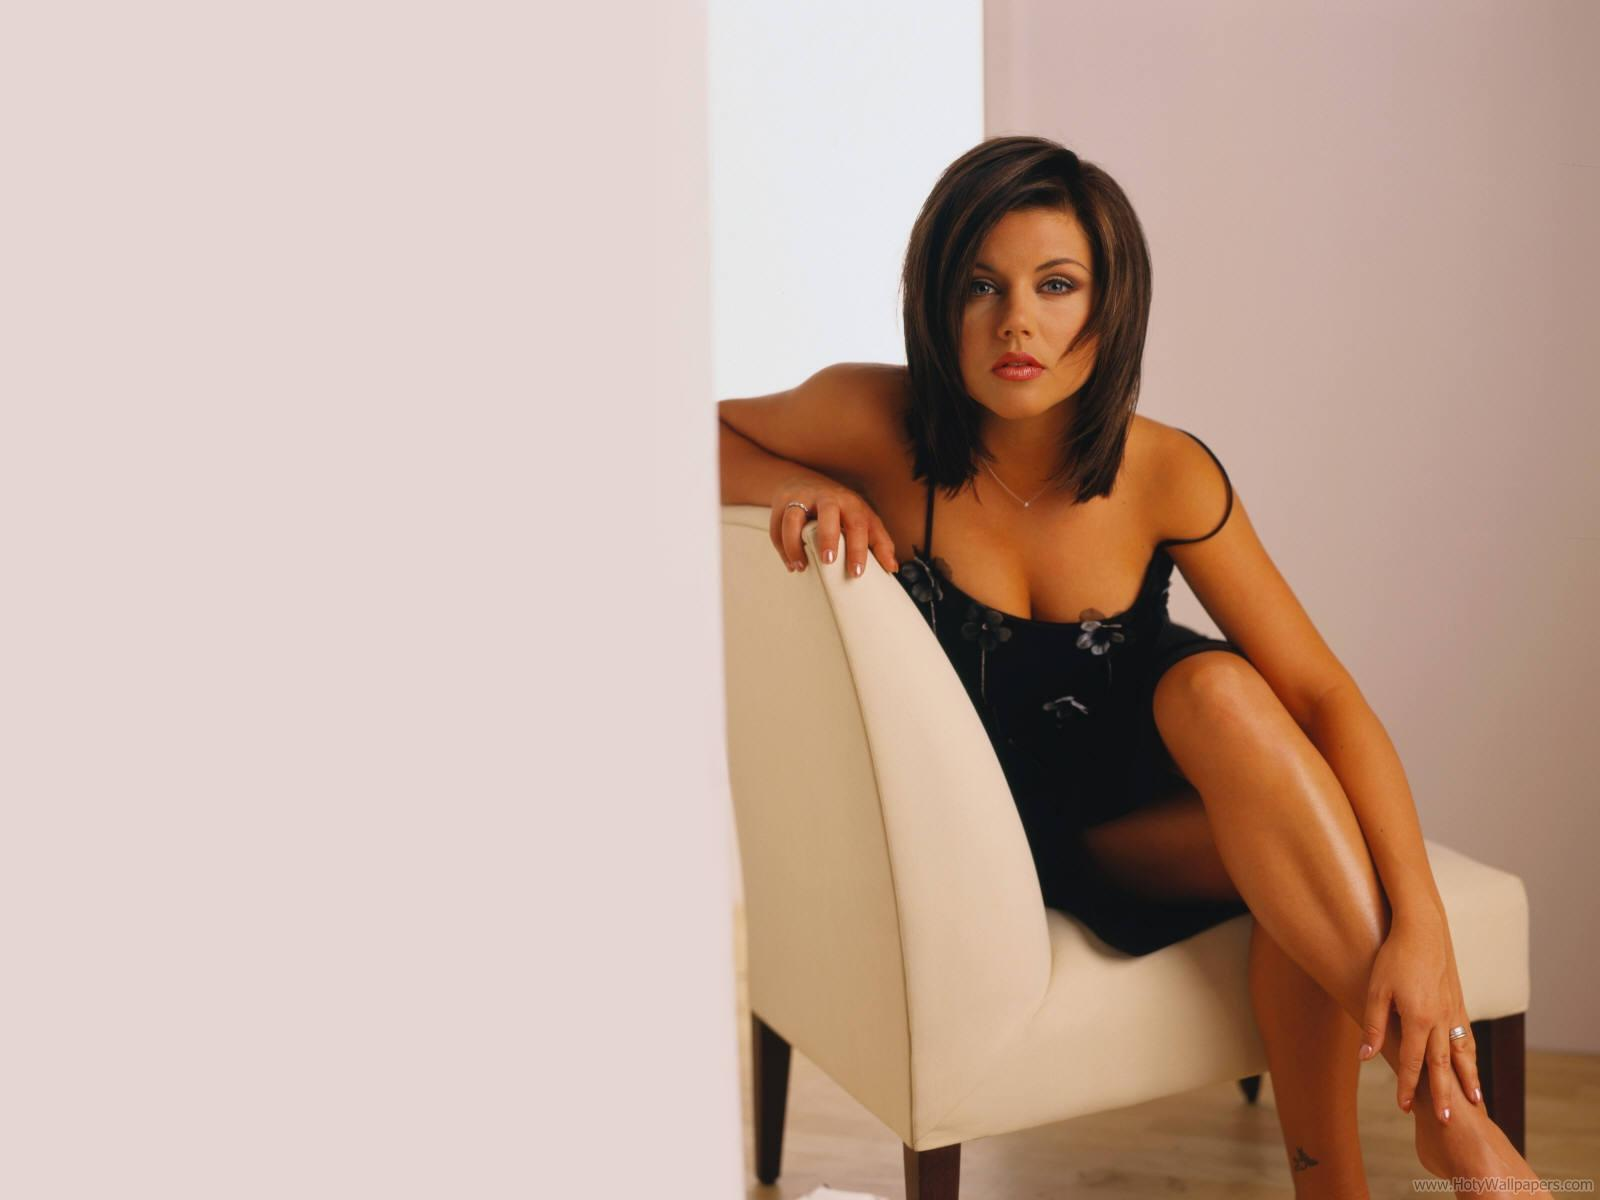 Pussy Tiffani Thiessen naked (76 images) Boobs, Twitter, cleavage